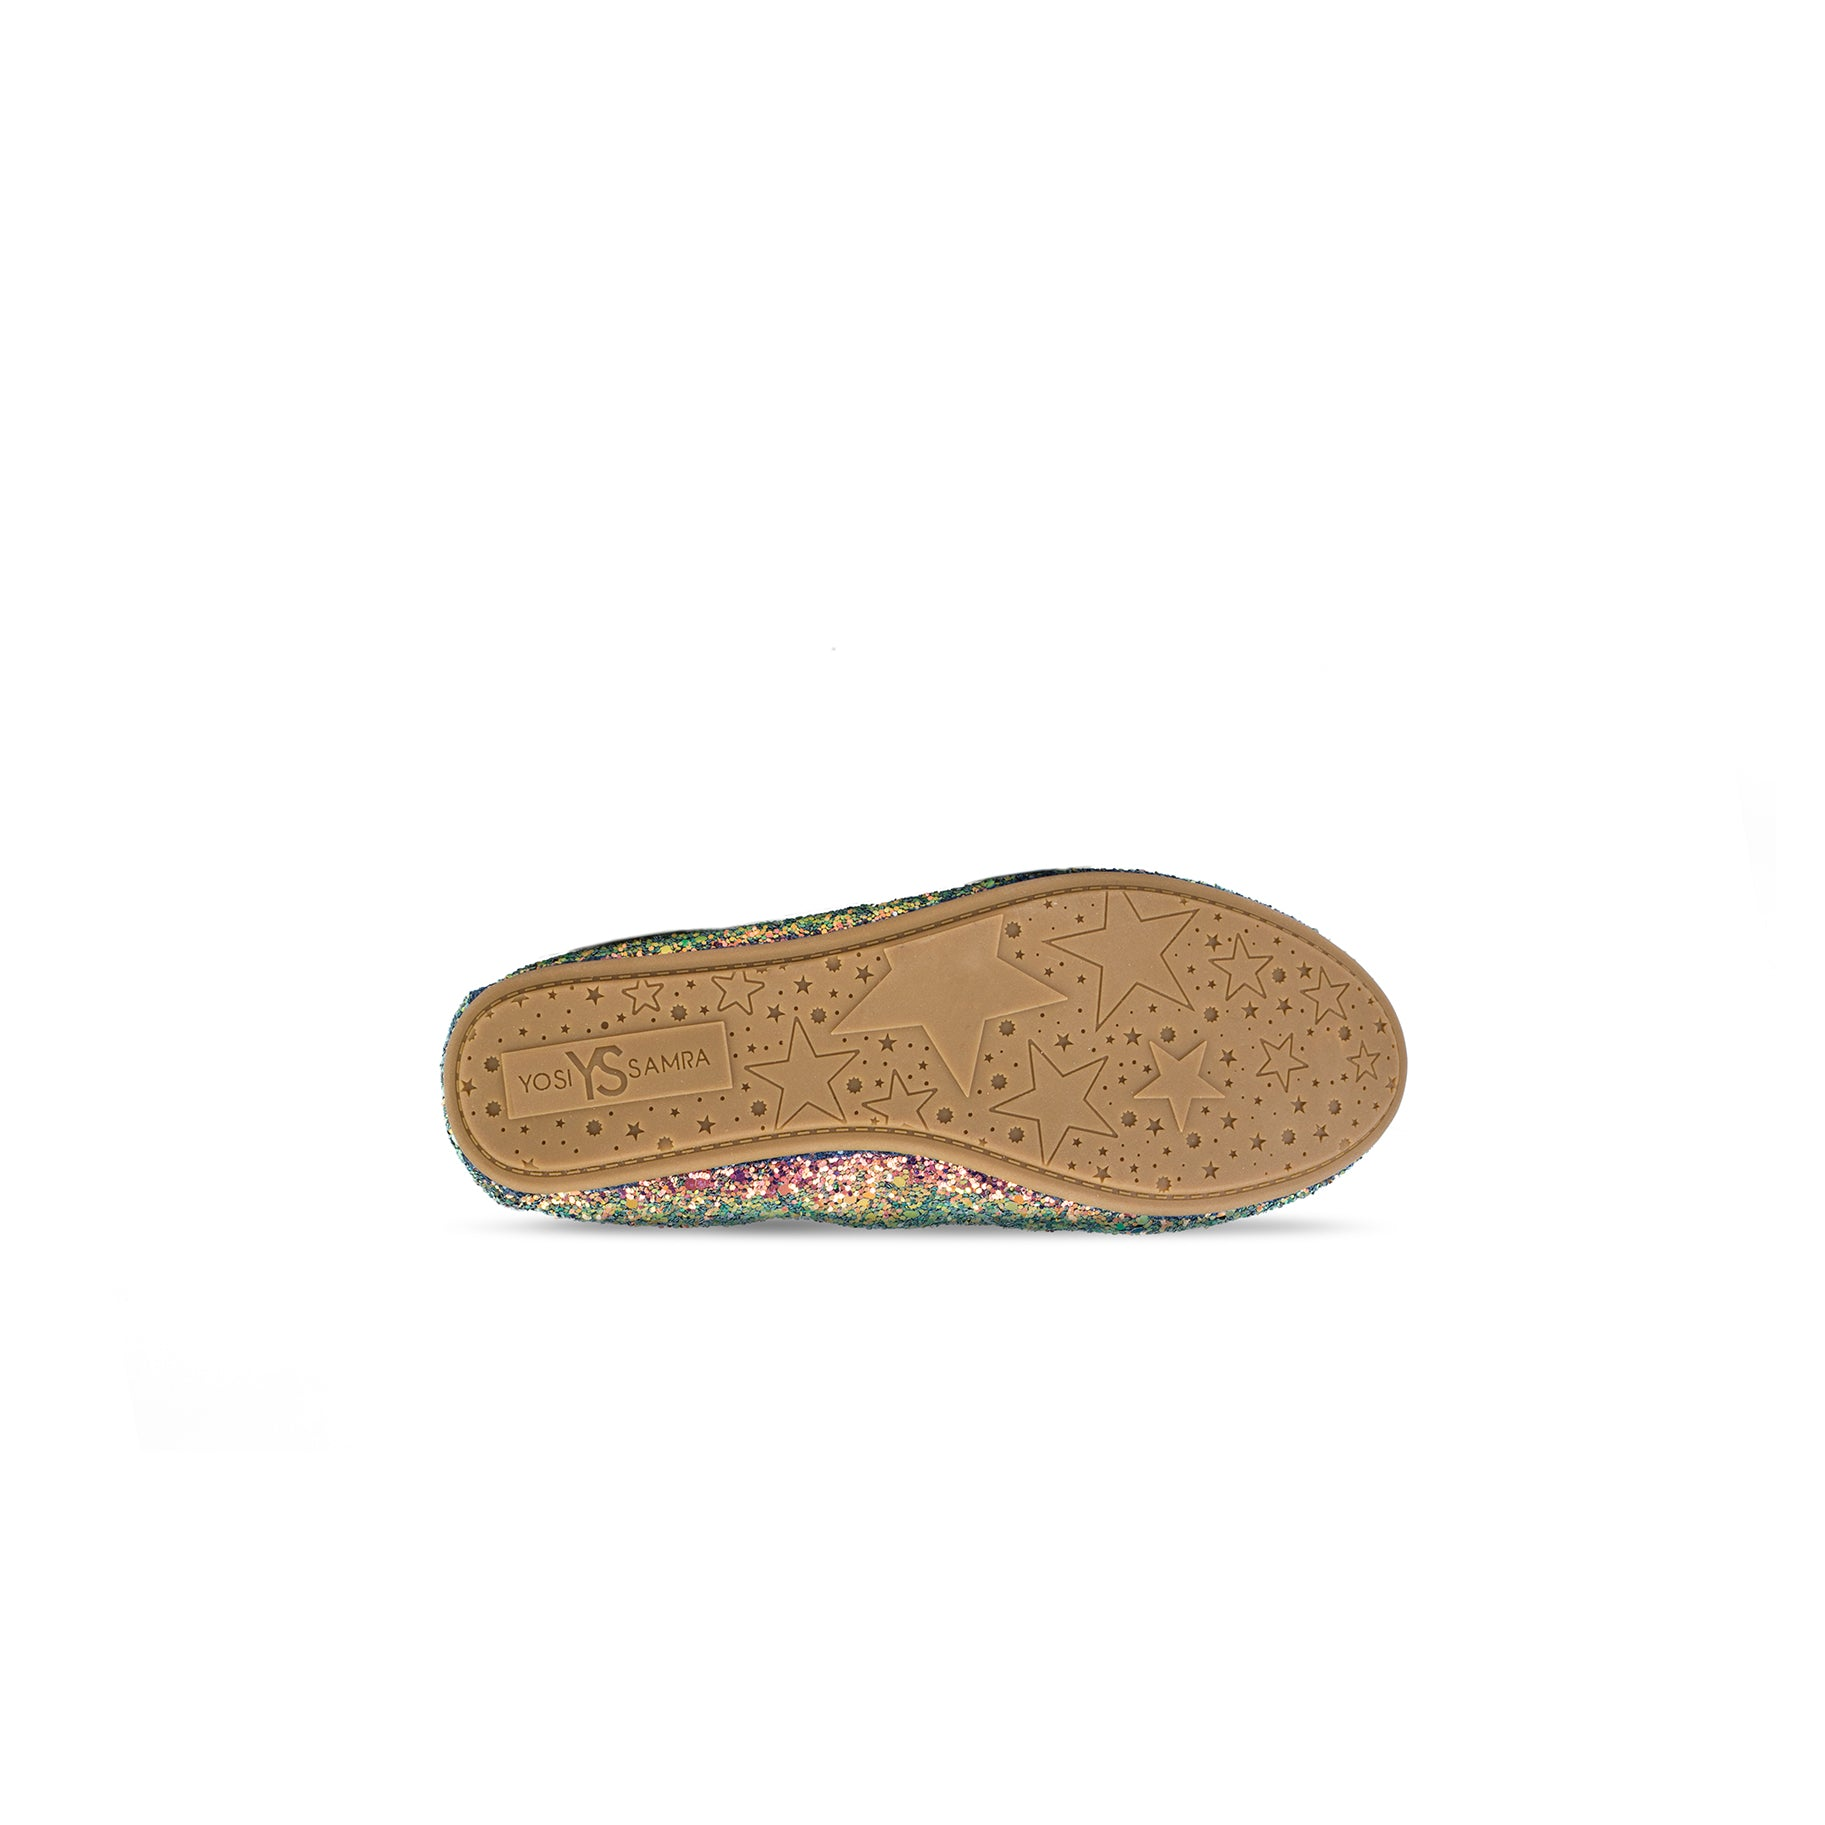 Miss Samara Green Iridescent Glitter Ballet Flat - Children's